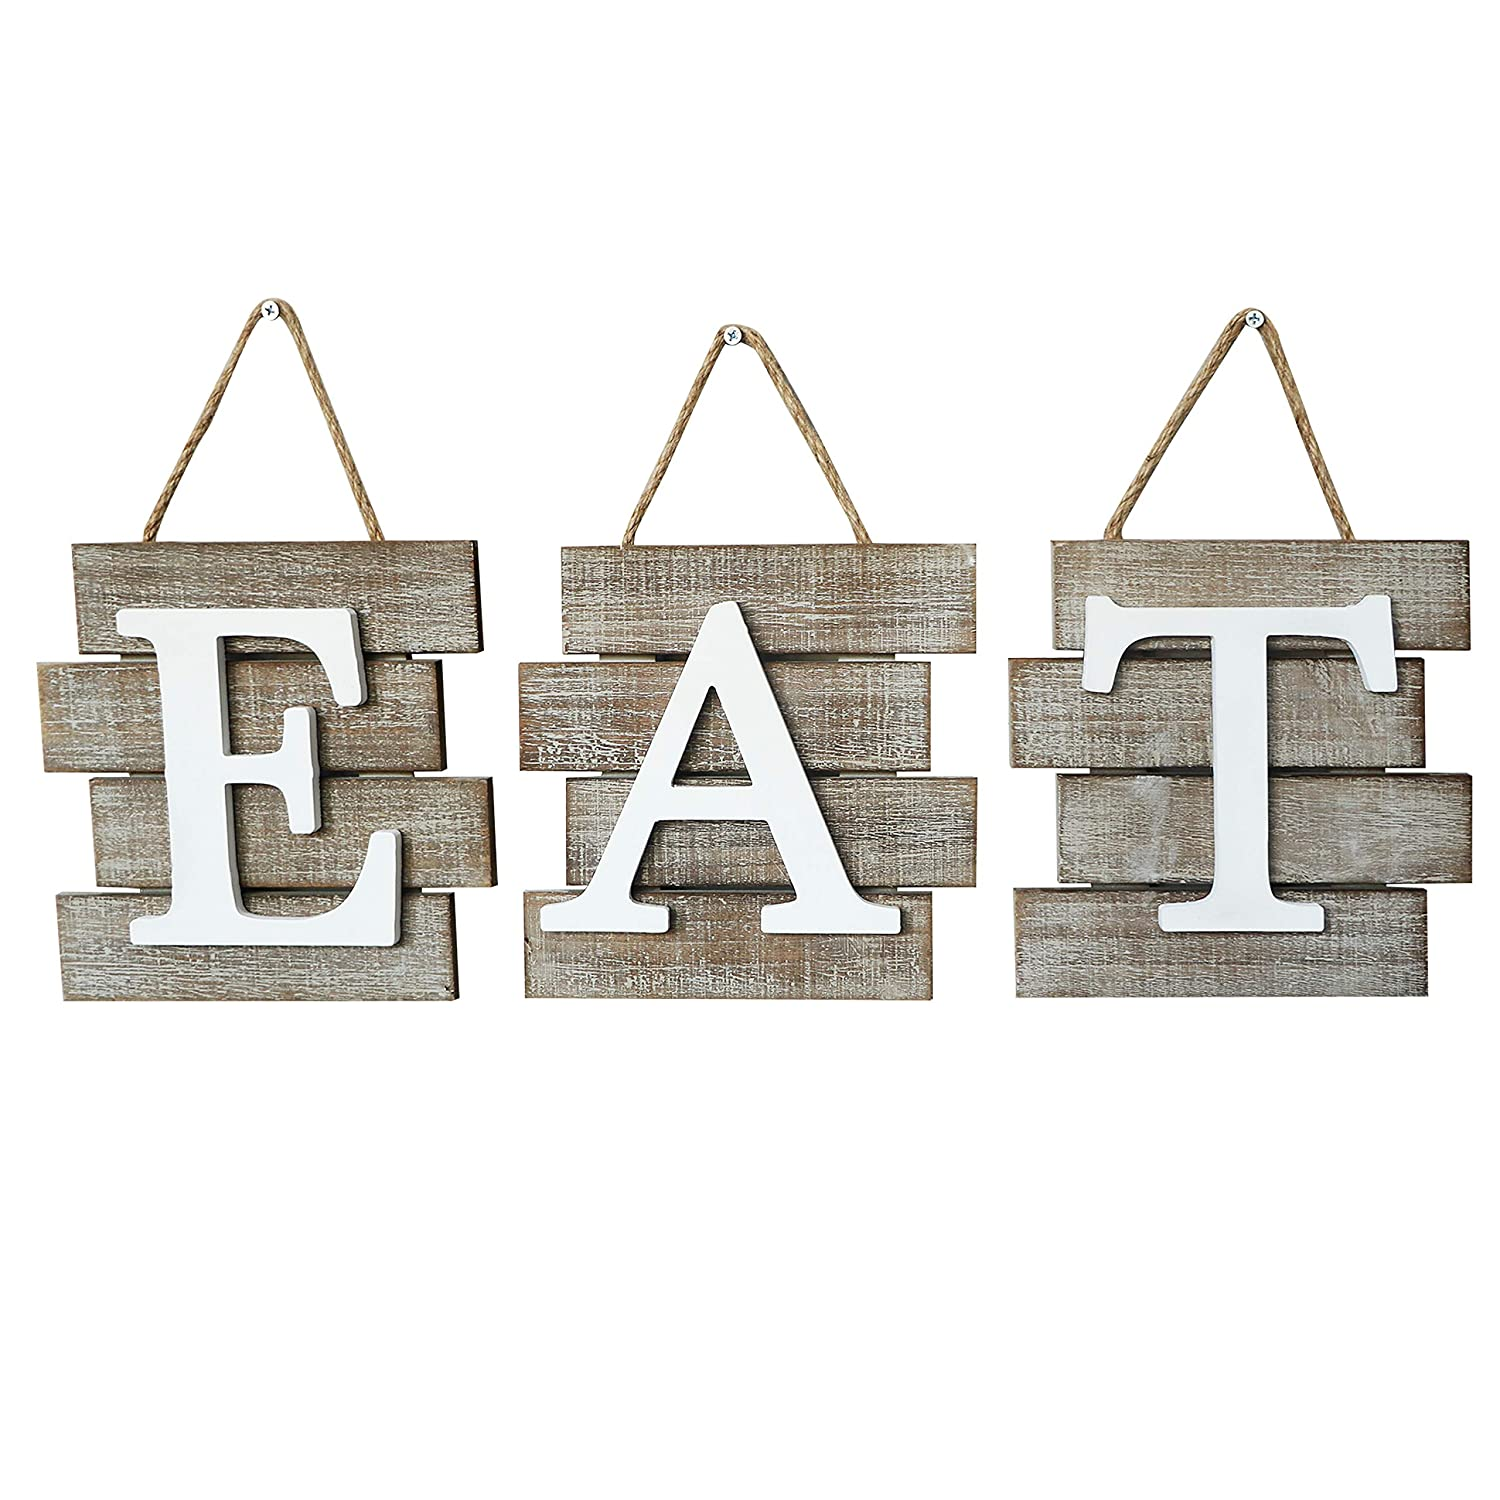 "Barnyard Designs Eat Sign Wall Decor Kitchen Home, Distressed Natural, Rustic Farmhouse Country Decorative Wall Art 24"" x 8"""